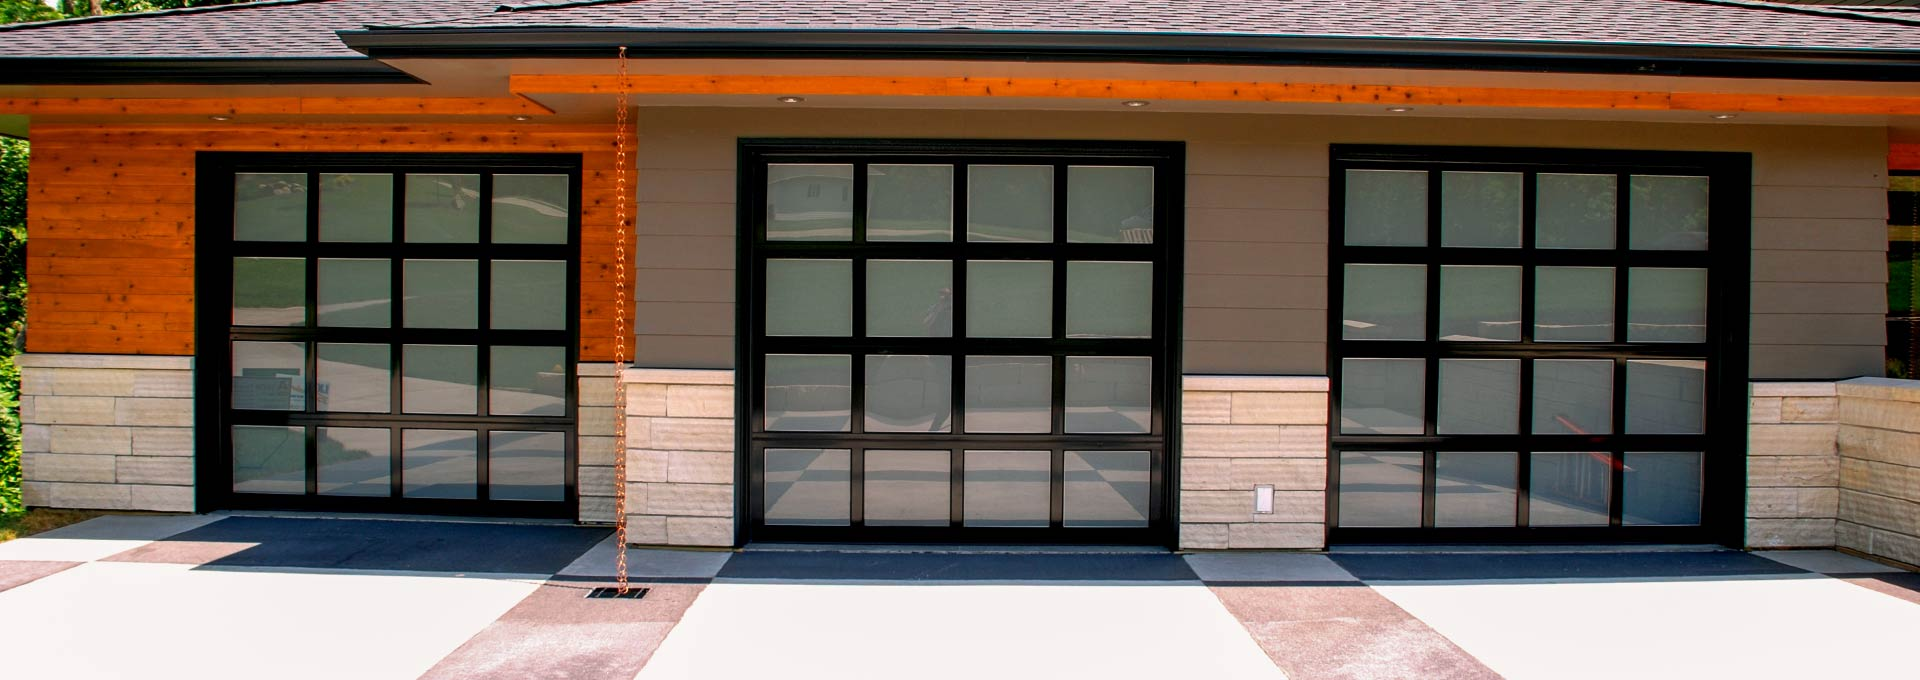 Aluminum/Glass Garage Doors